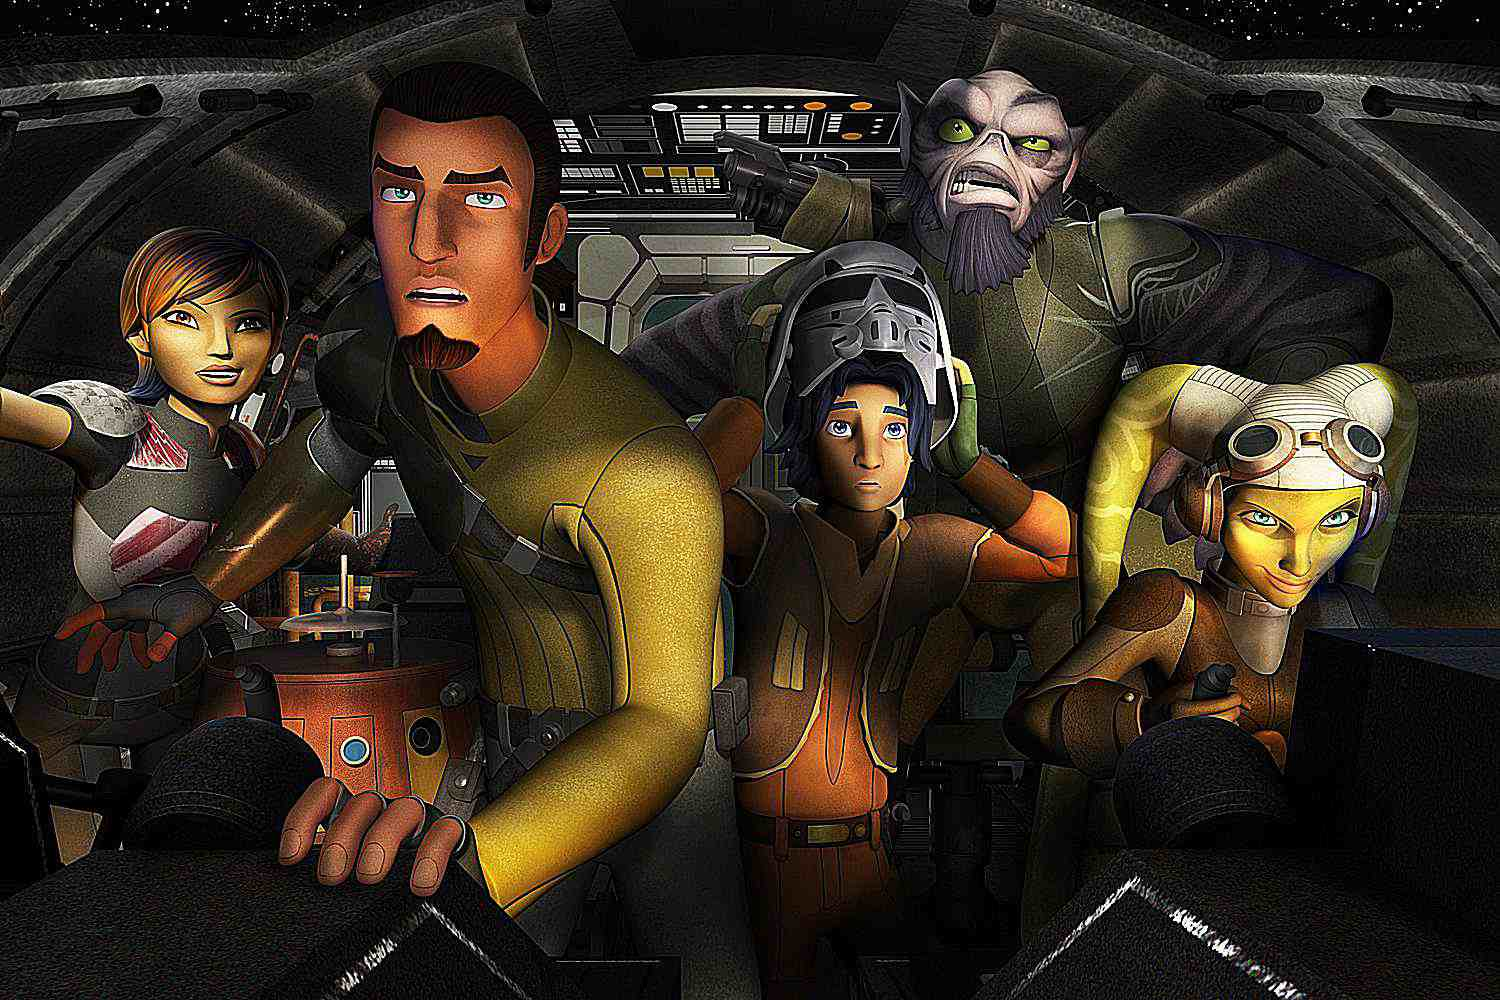 An up-to-date guide to every episode of Star Wars Rebels